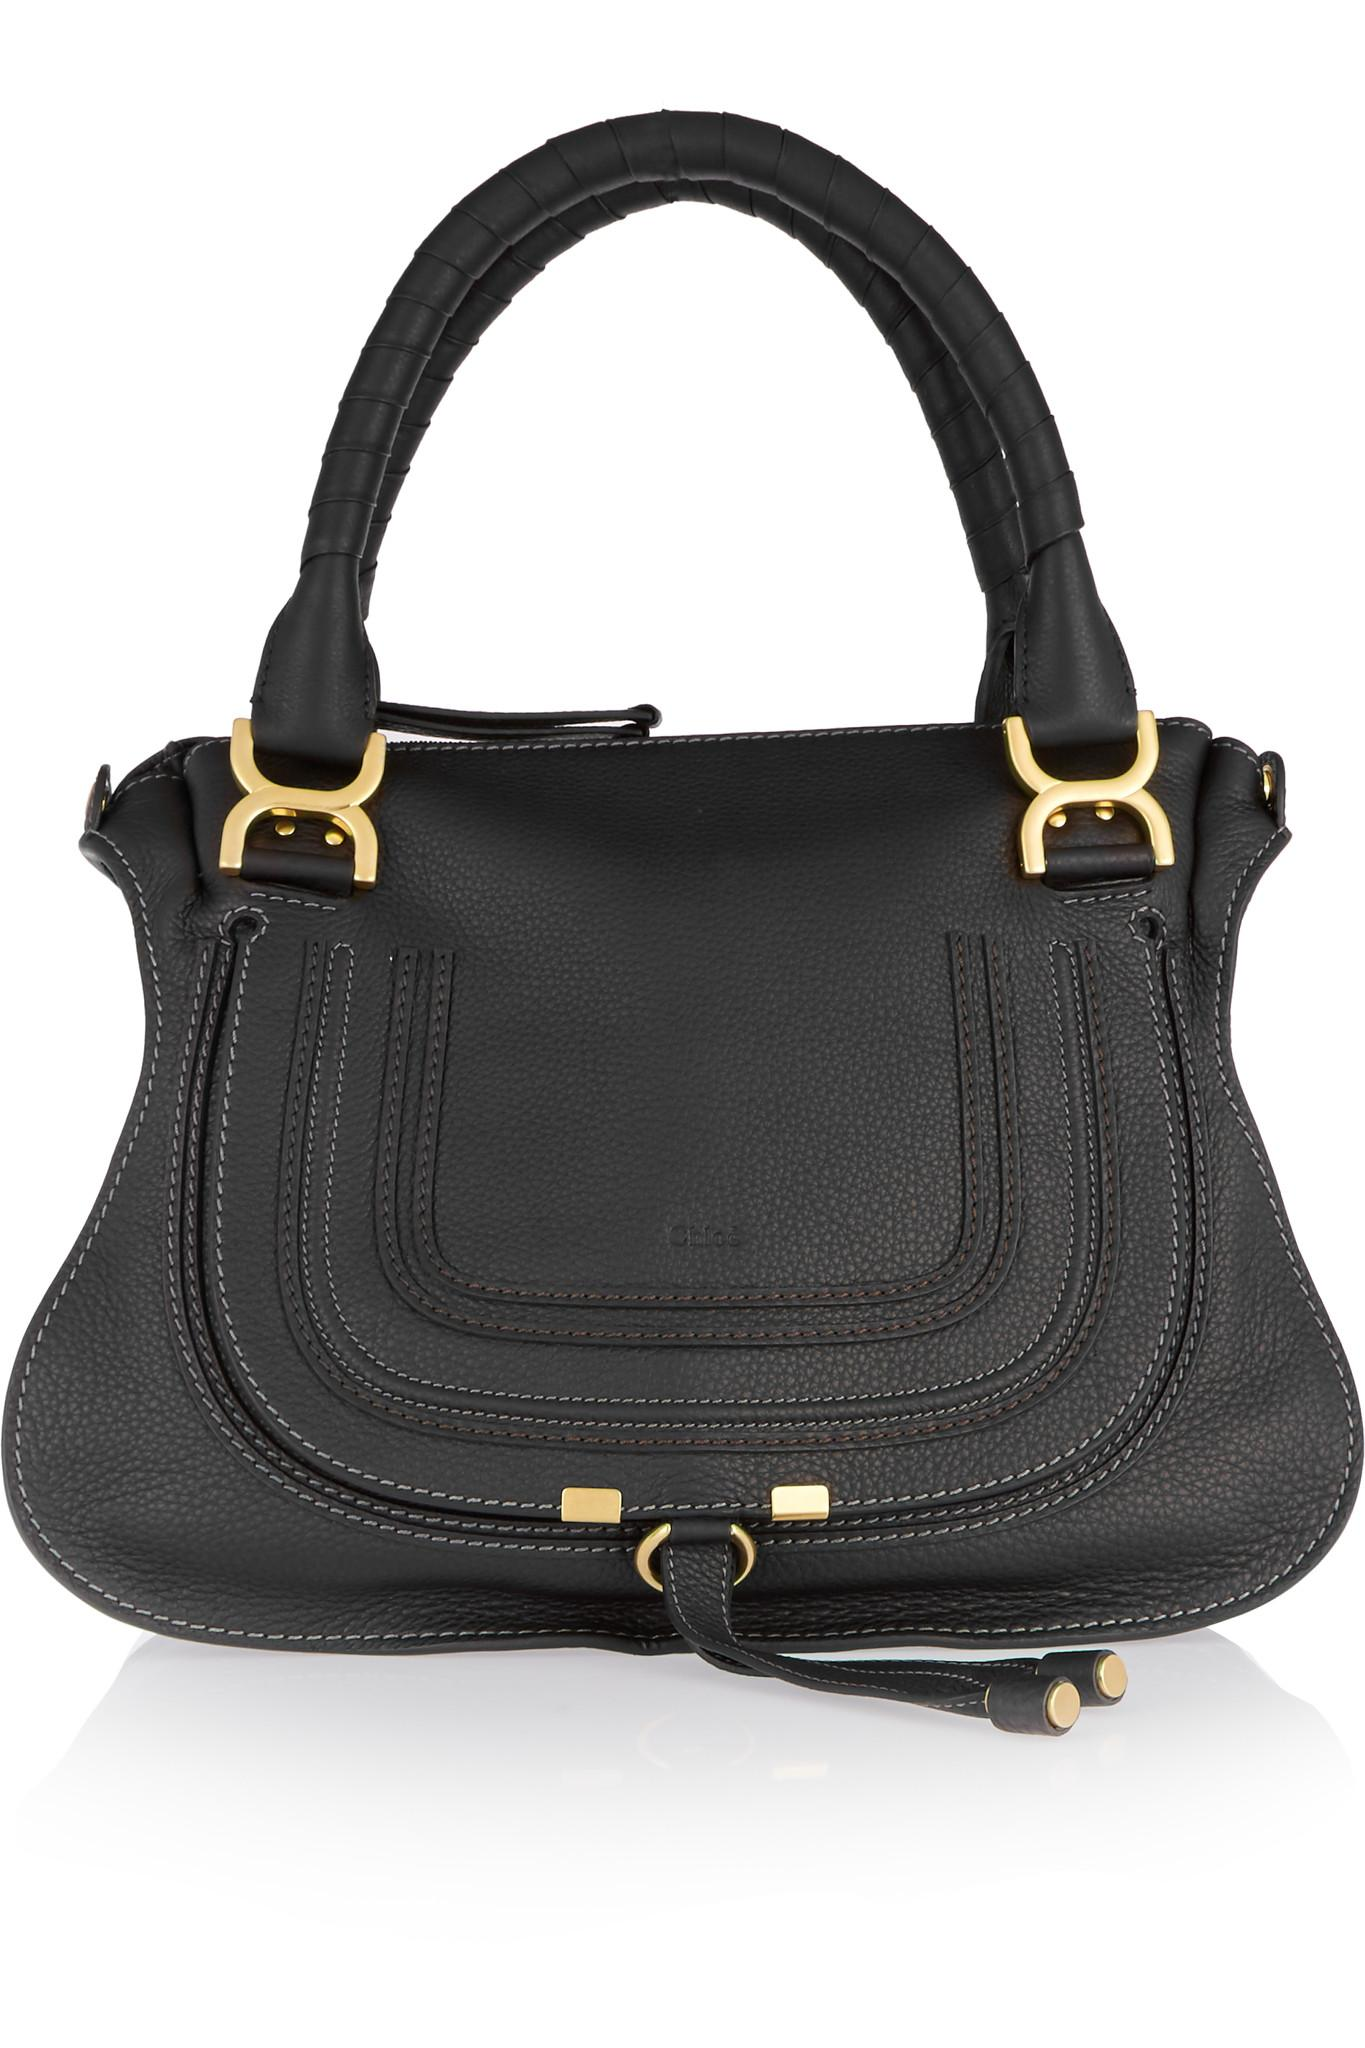 2aca00c2e06 Chloé Marcie Medium Textured-leather Shoulder Bag in Black - Save 49 ...